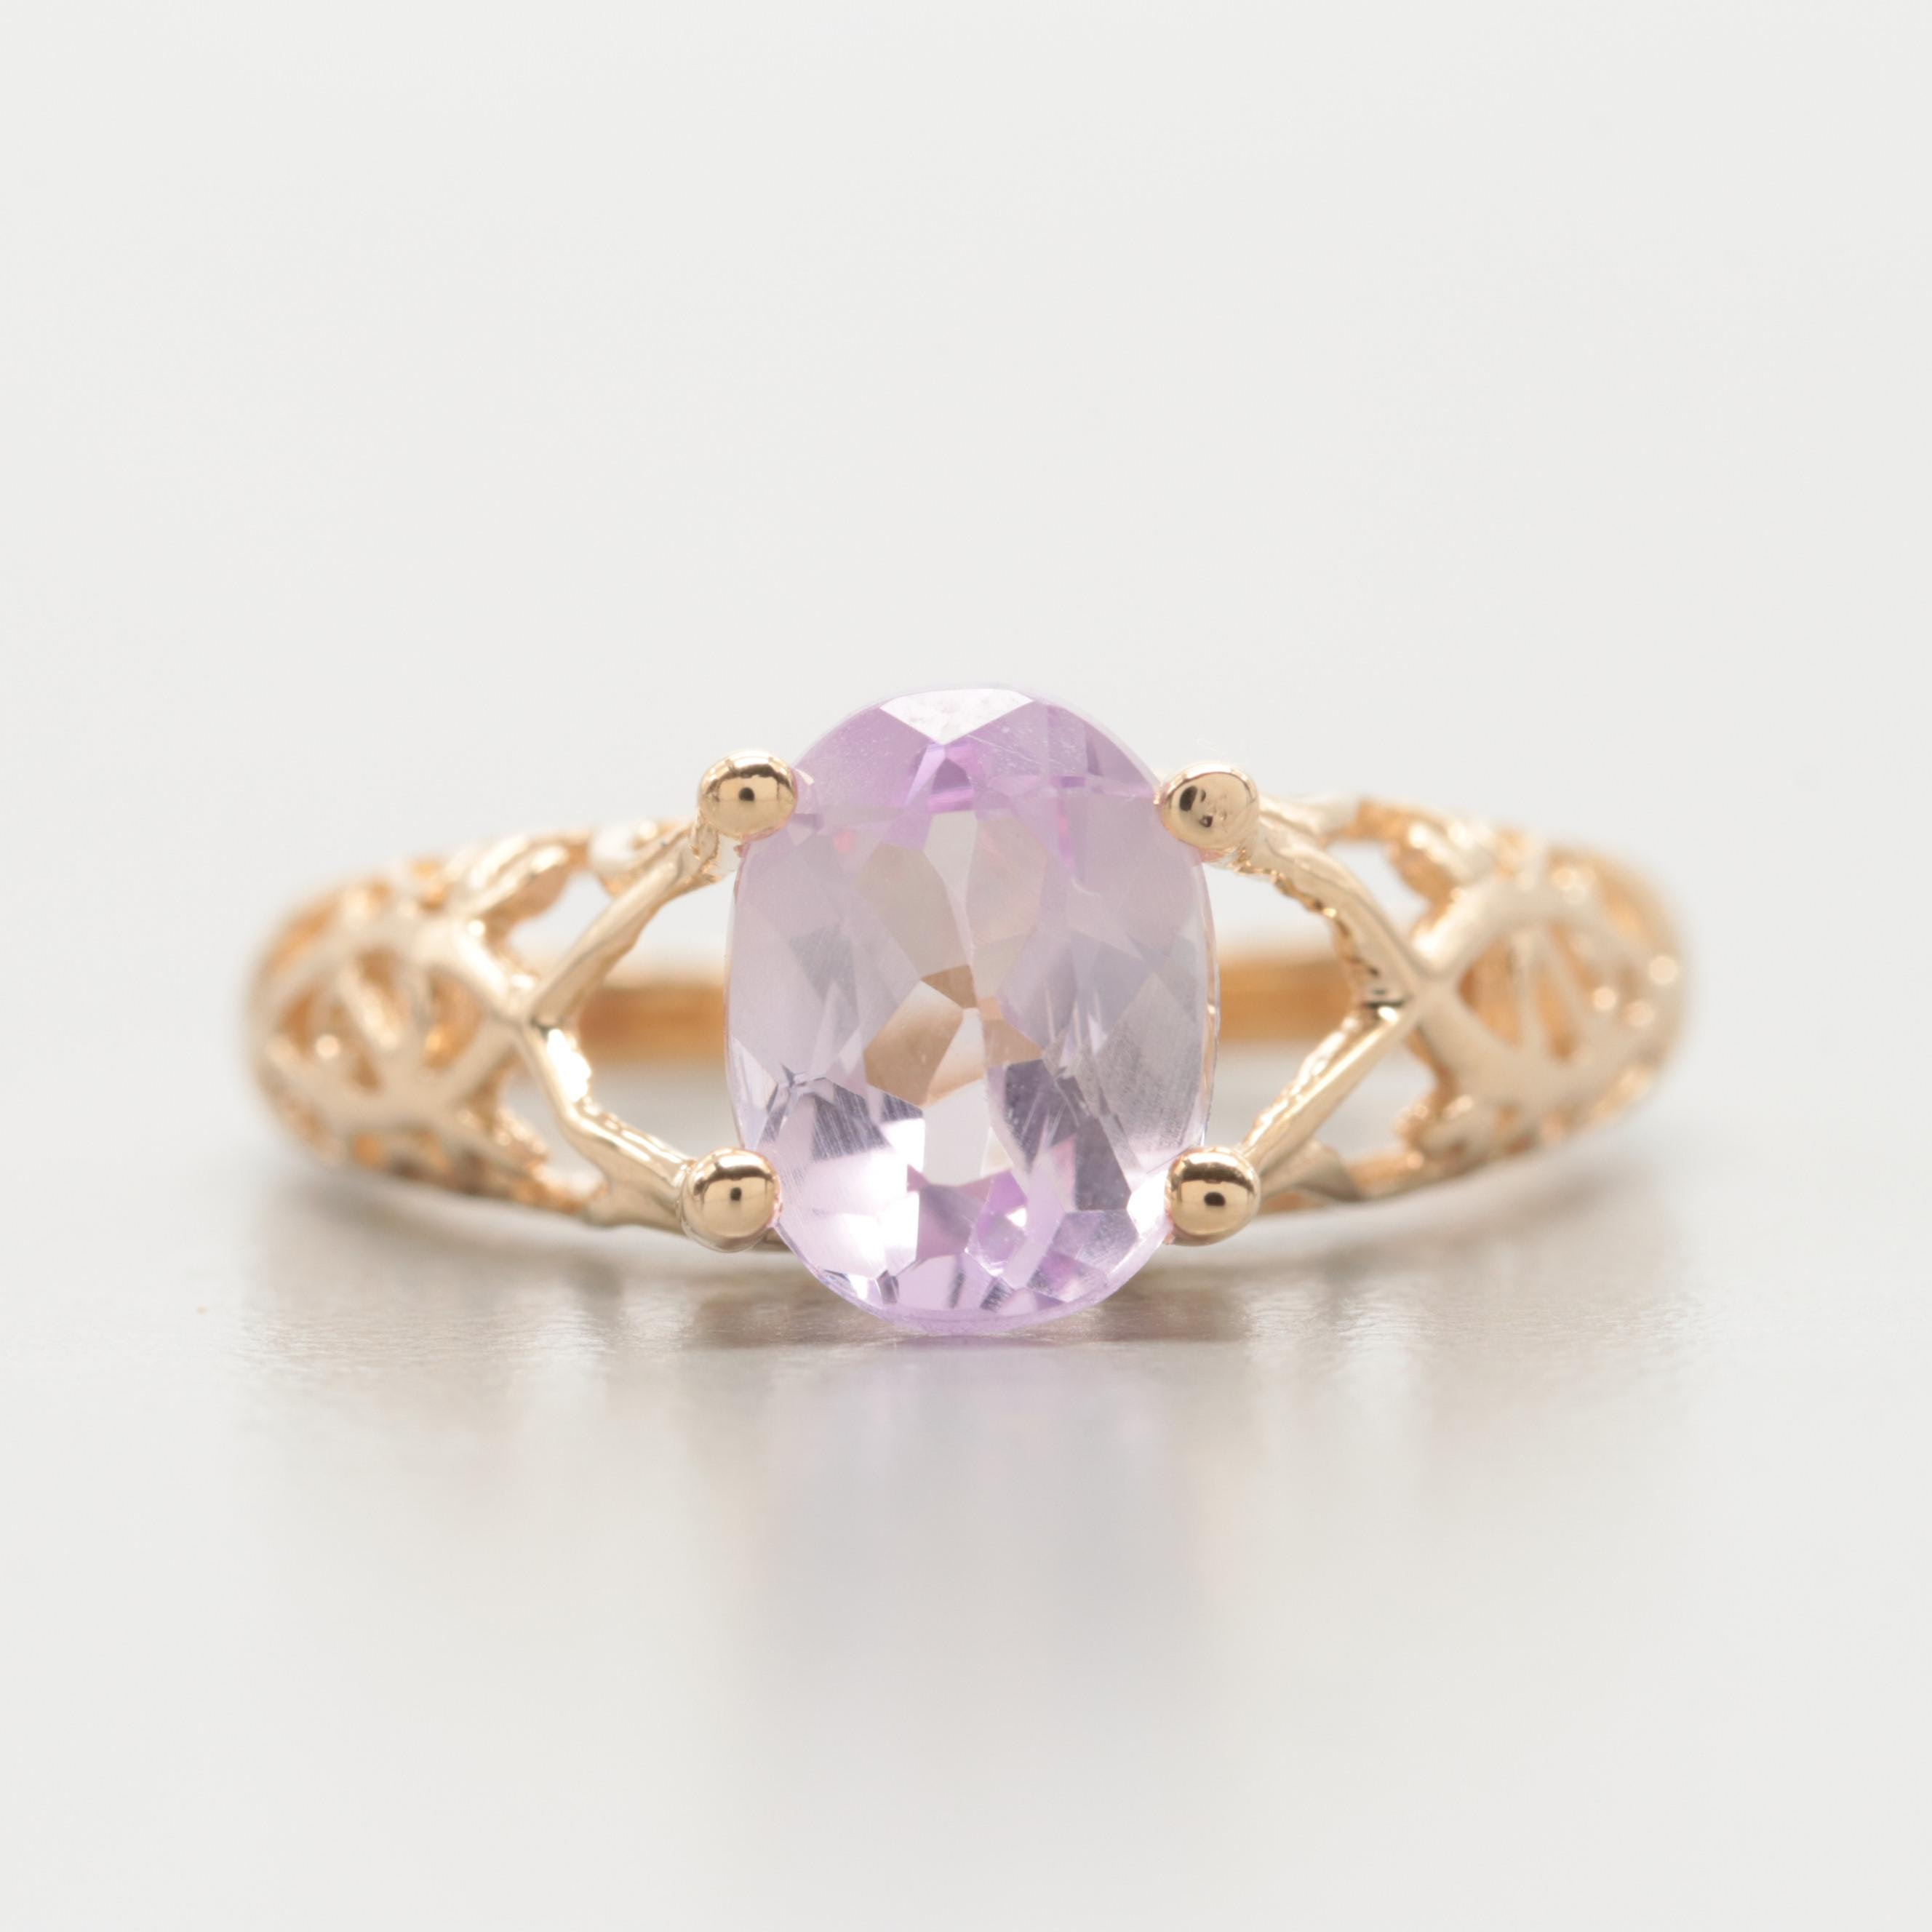 10K Yellow Gold Kunzite Ring